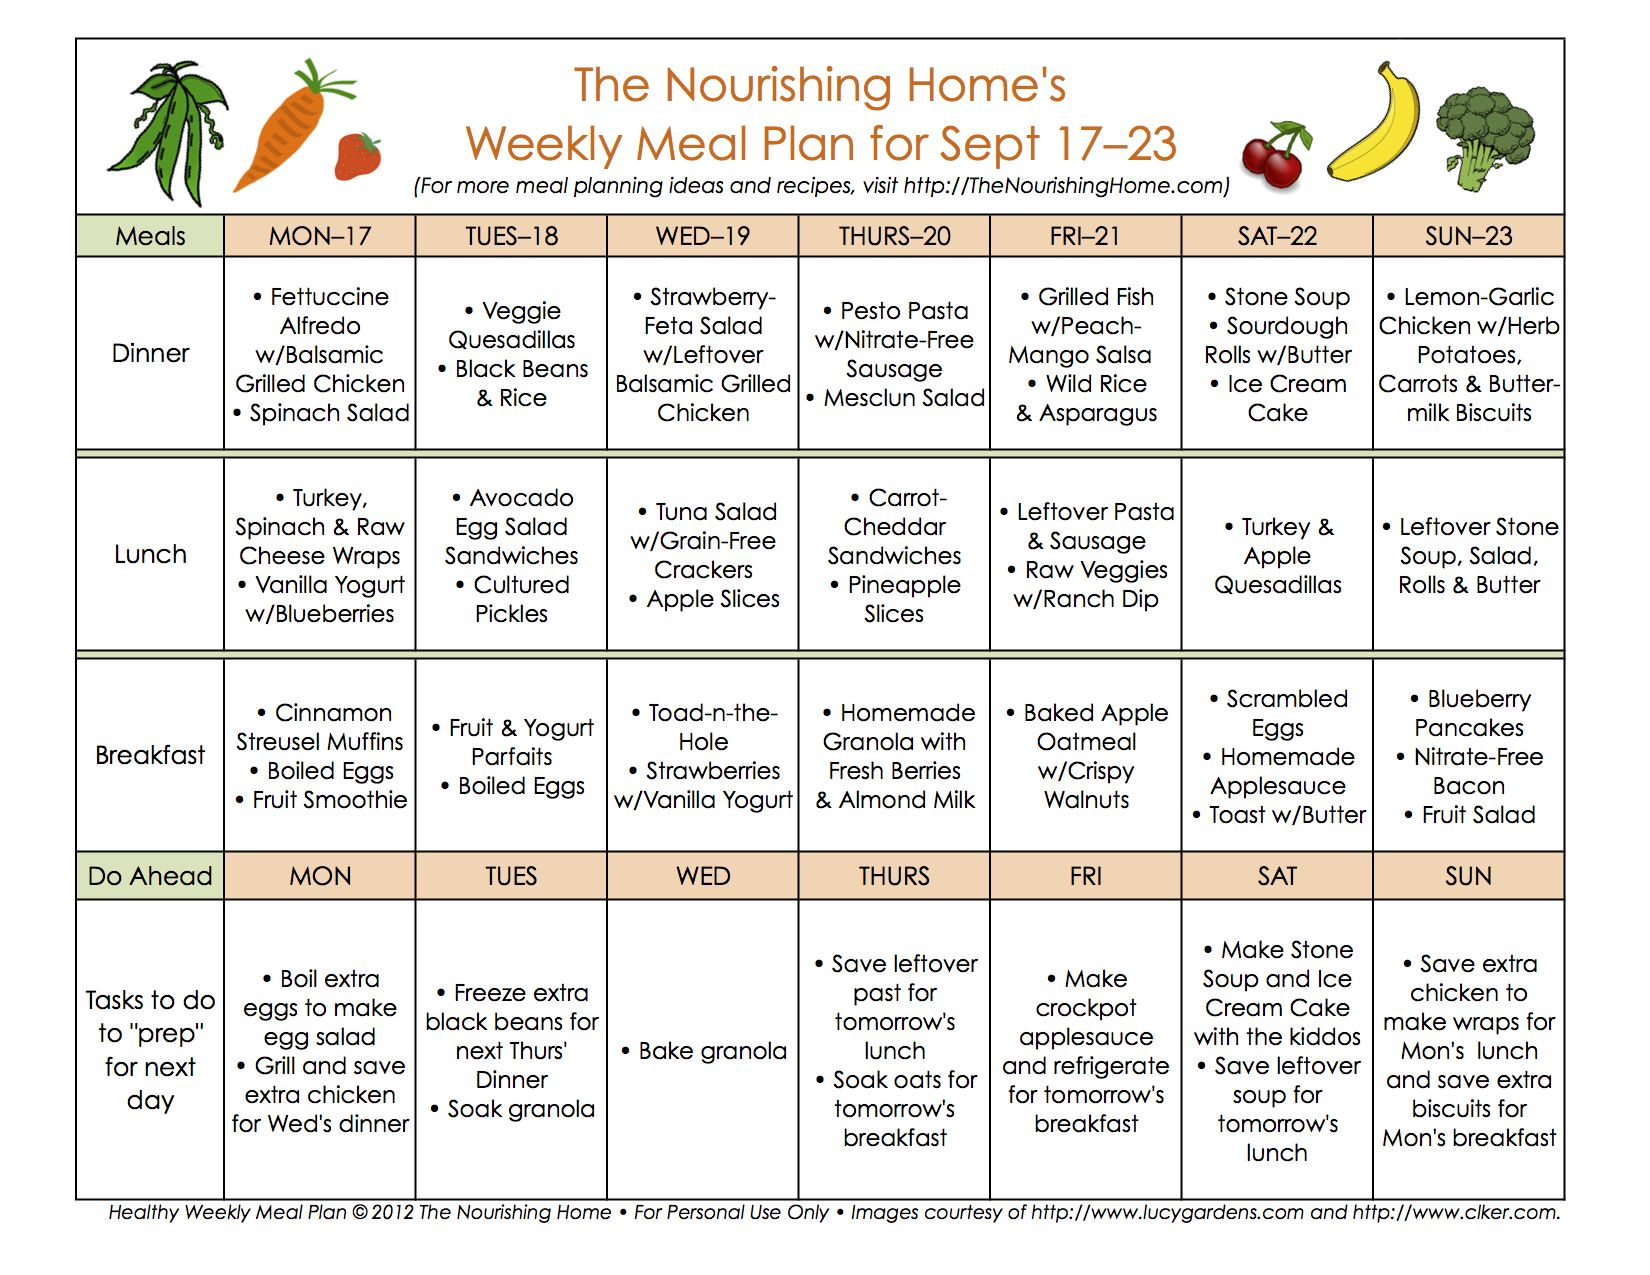 71 best ideas about The Nourishing Home on Pinterest | Weekly meal ...